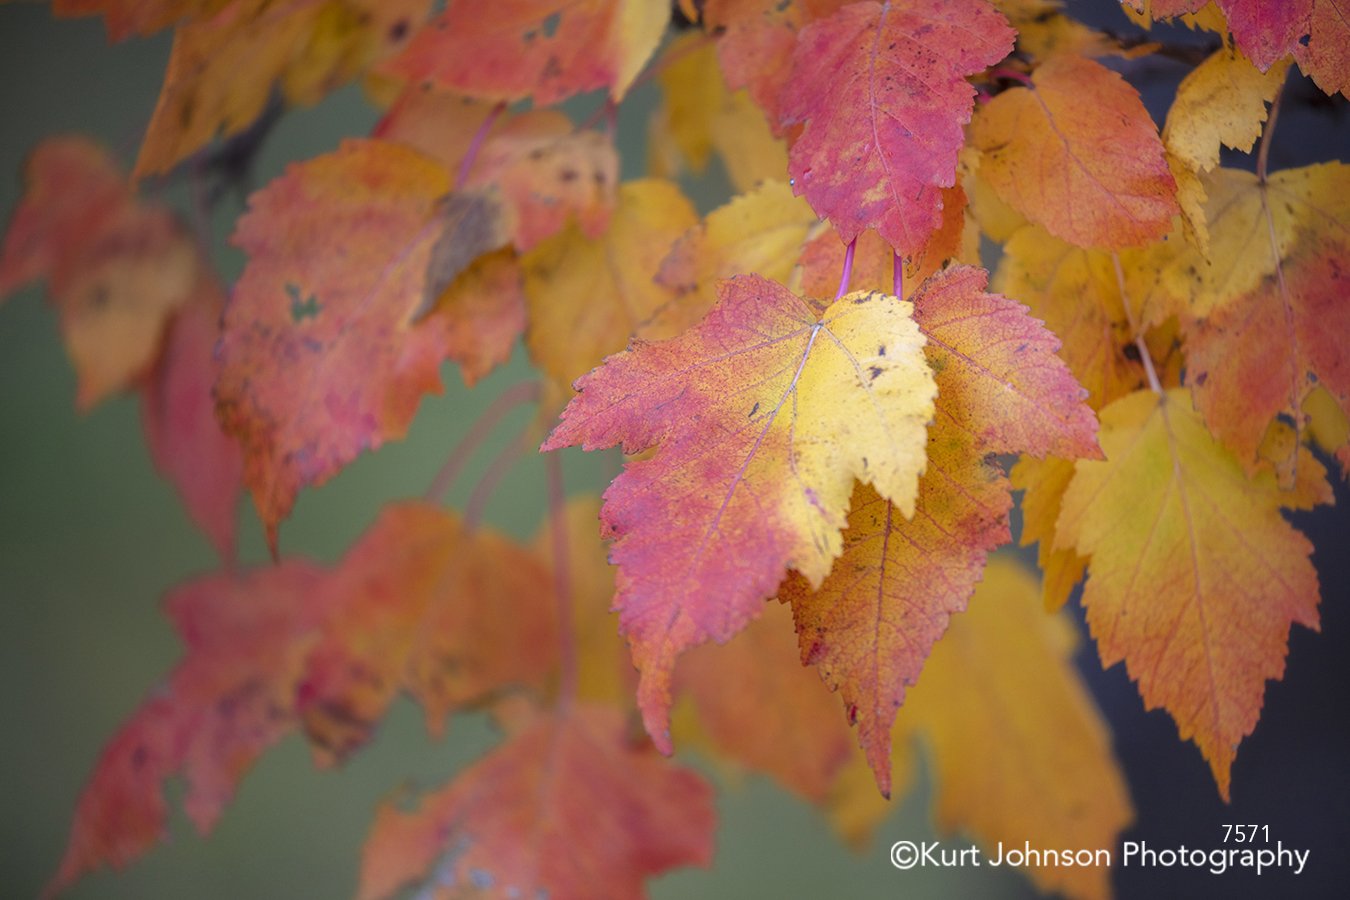 red yellow orange leaves tree branches trees close up details macro